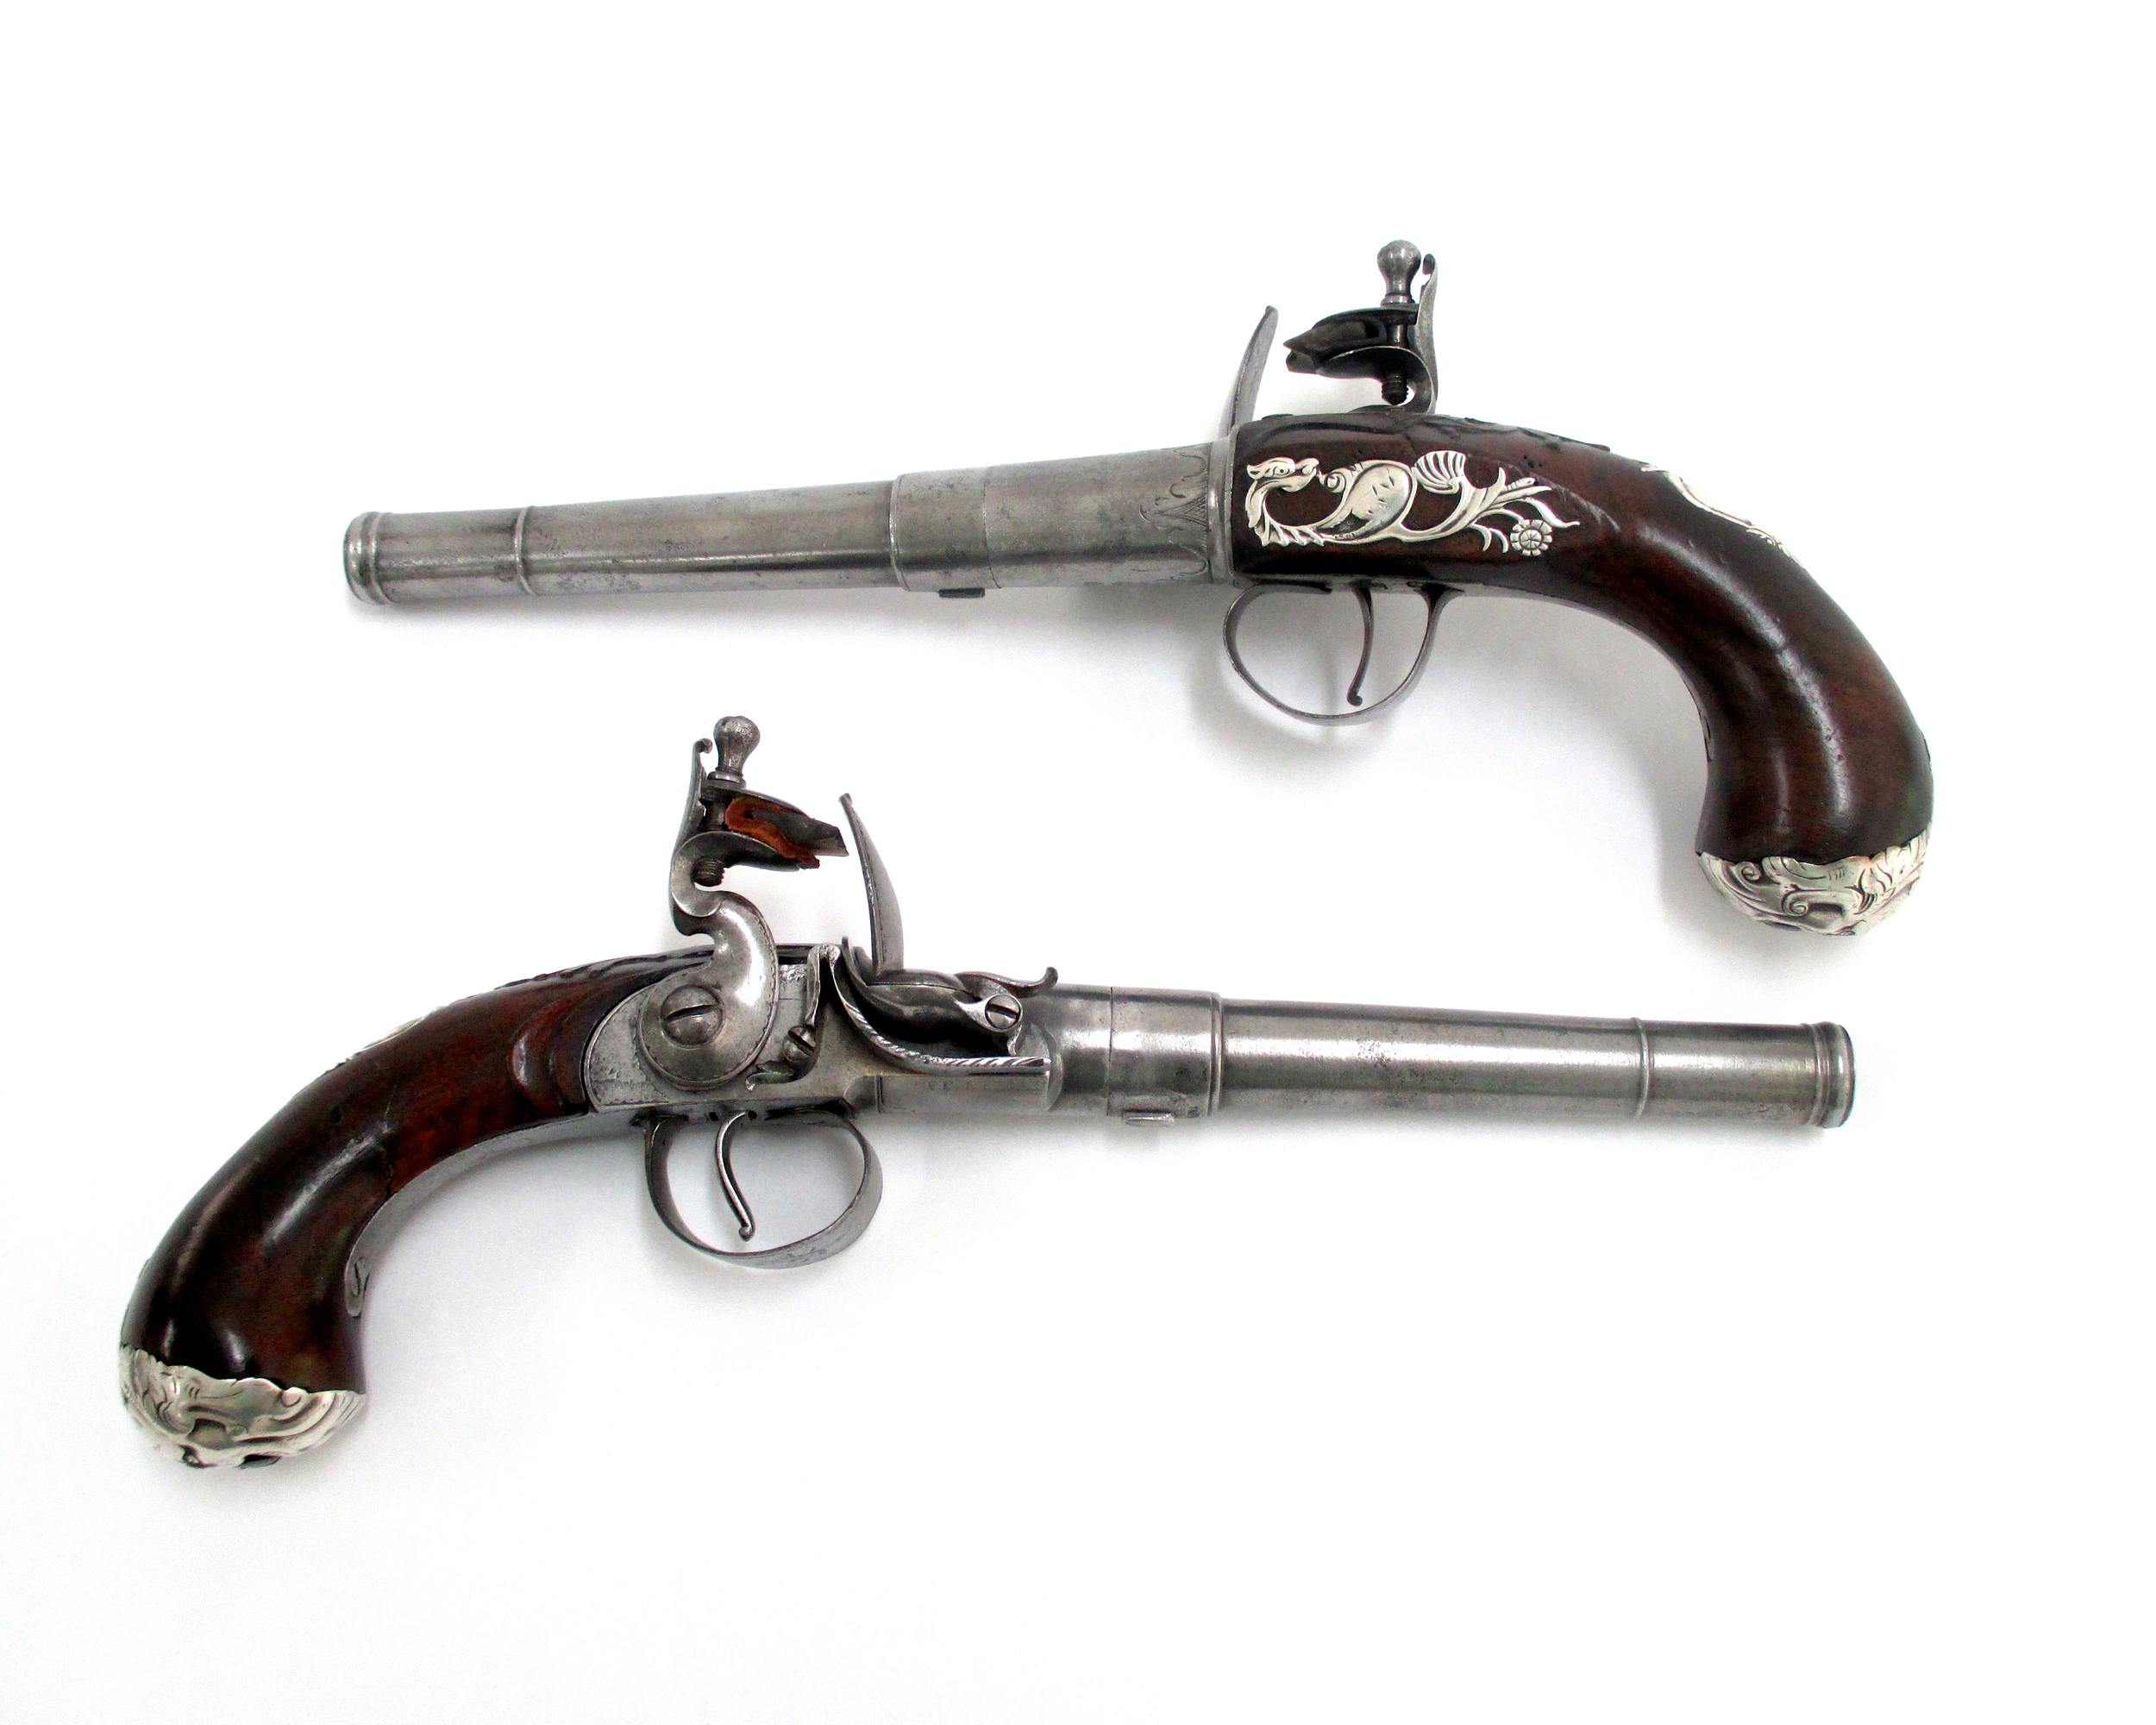 pair-20bore-english-queen-ann-flintlock-pistols-freeman-gary-friedland-arms-armor2.jpg